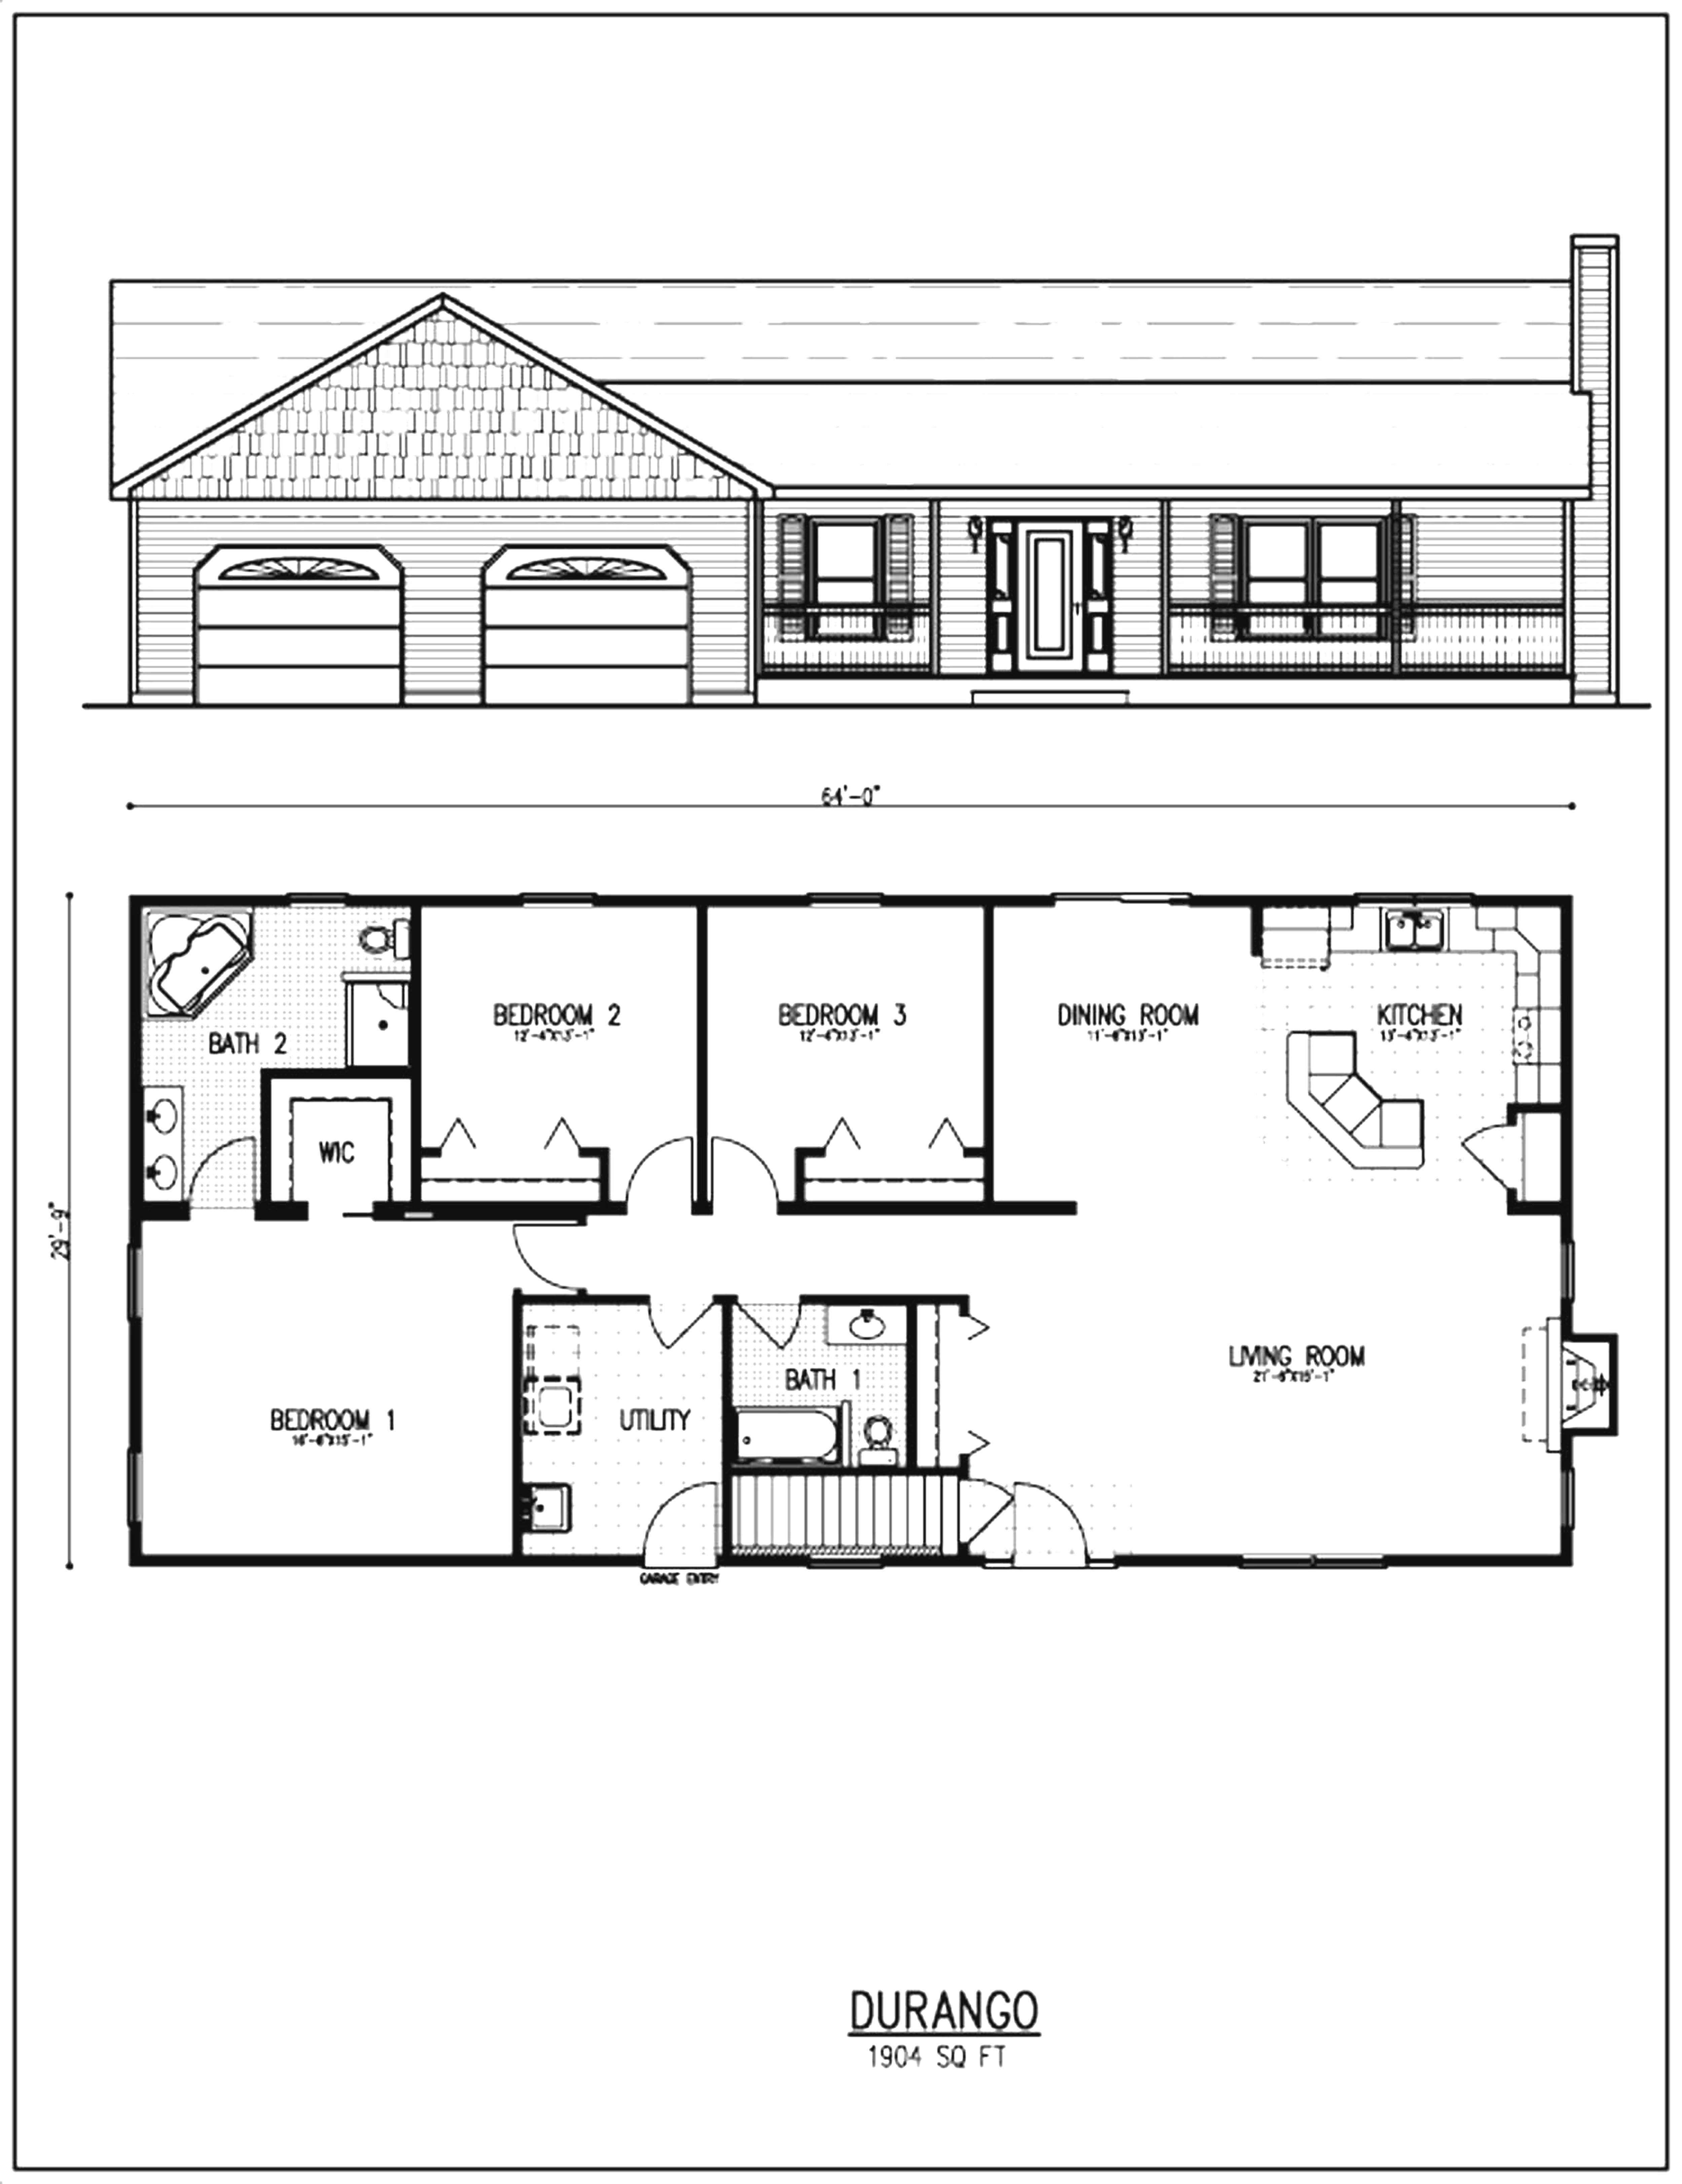 Ranch Style House Plans with Open Floor Plans Beautiful Ranch House Remodel Floor Plans Ranch House Remodel Floor